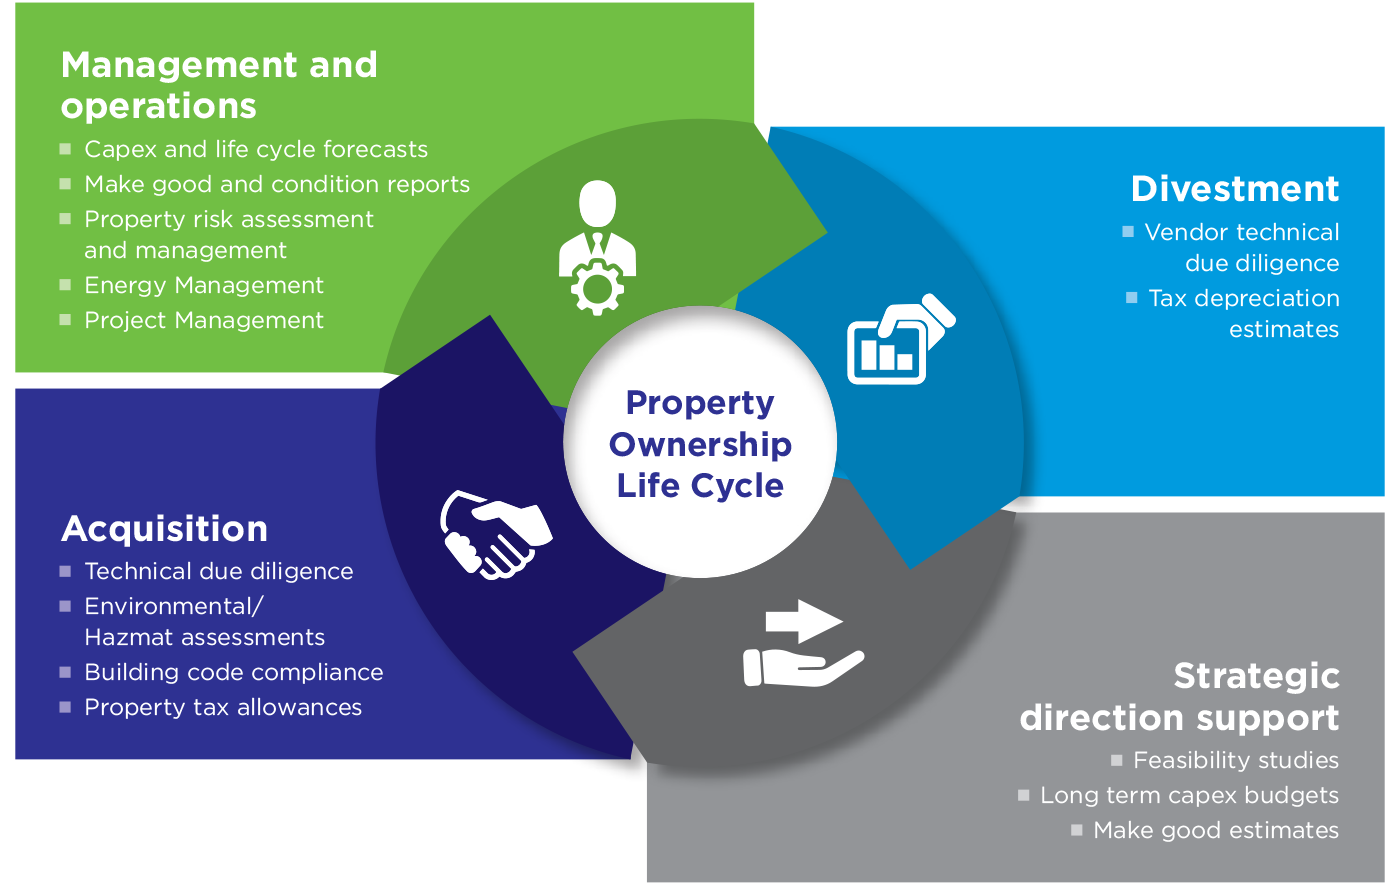 Property ownership life cycle